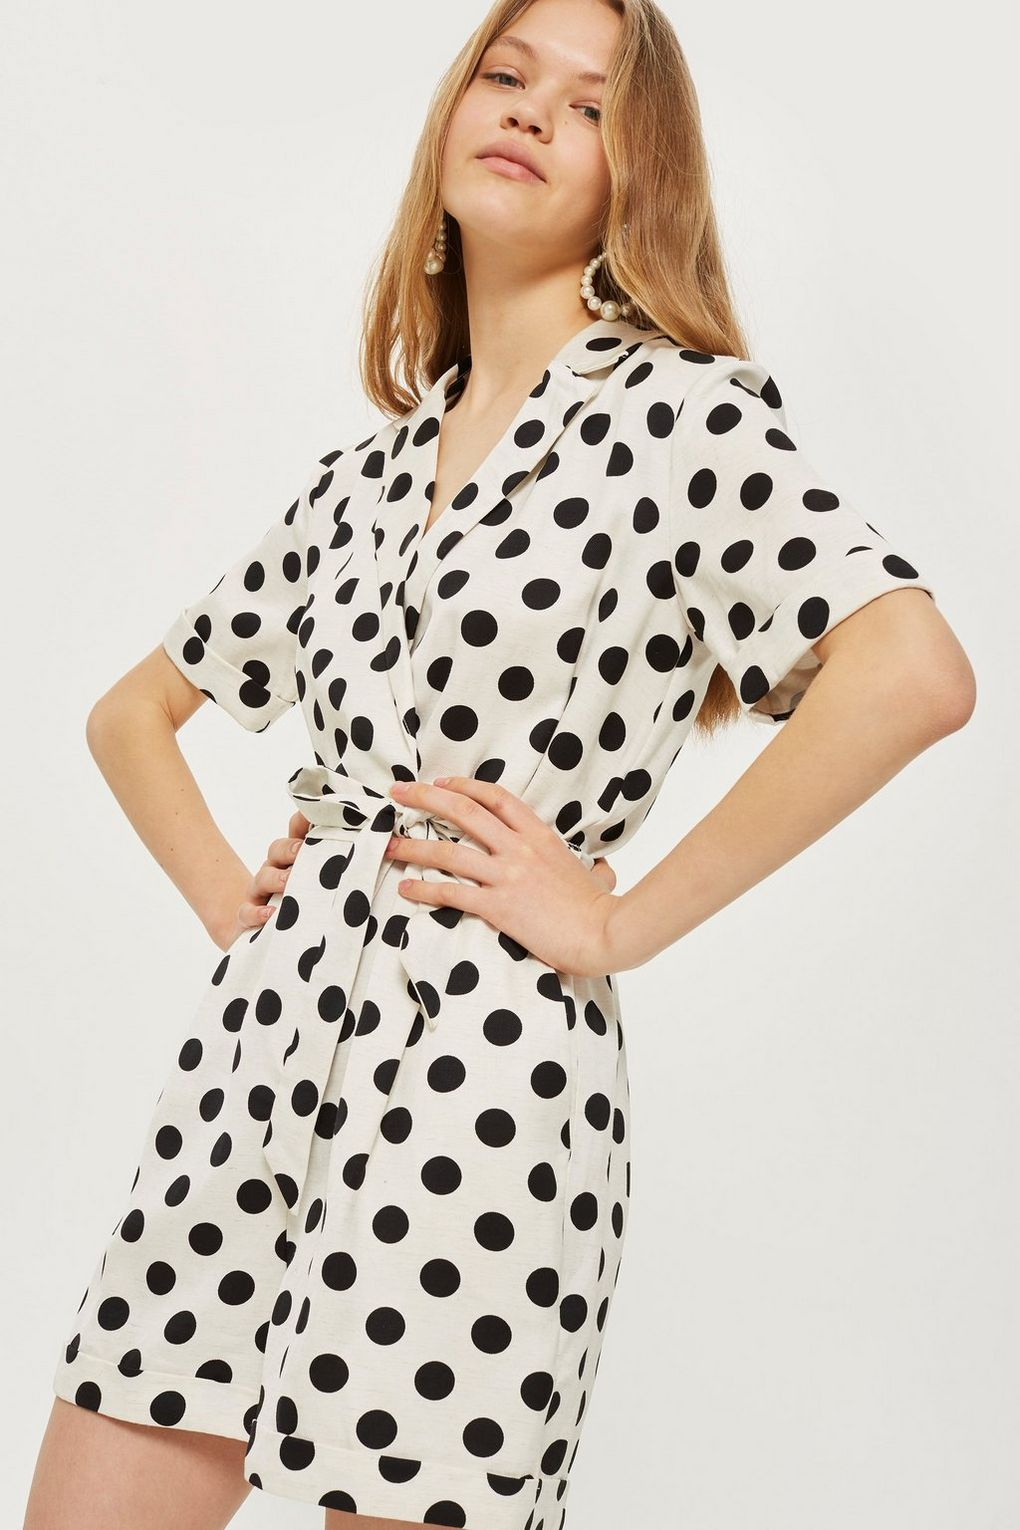 Spot Print Playsuit - Rompers & Jumpsuits - Clothing